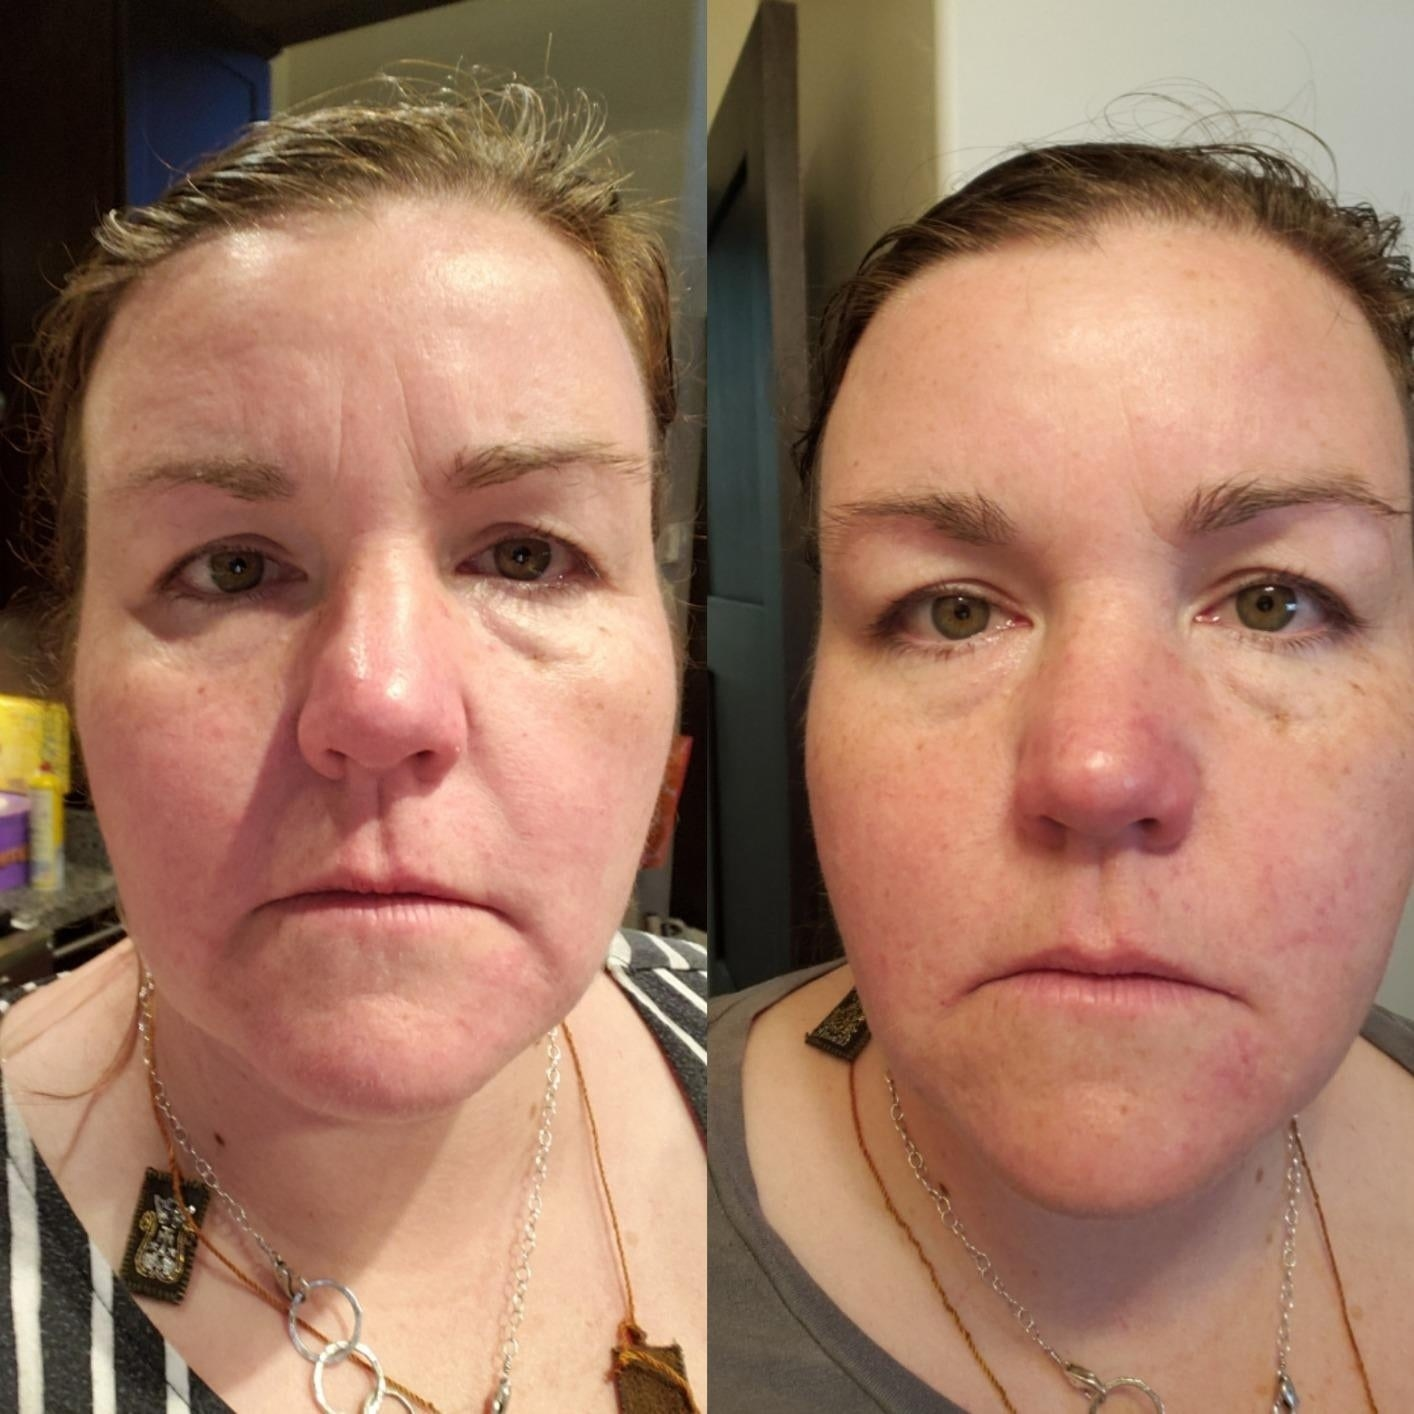 on the left, a reviewer before using the cream, and on the right the reviewer with their wrinkles reduced